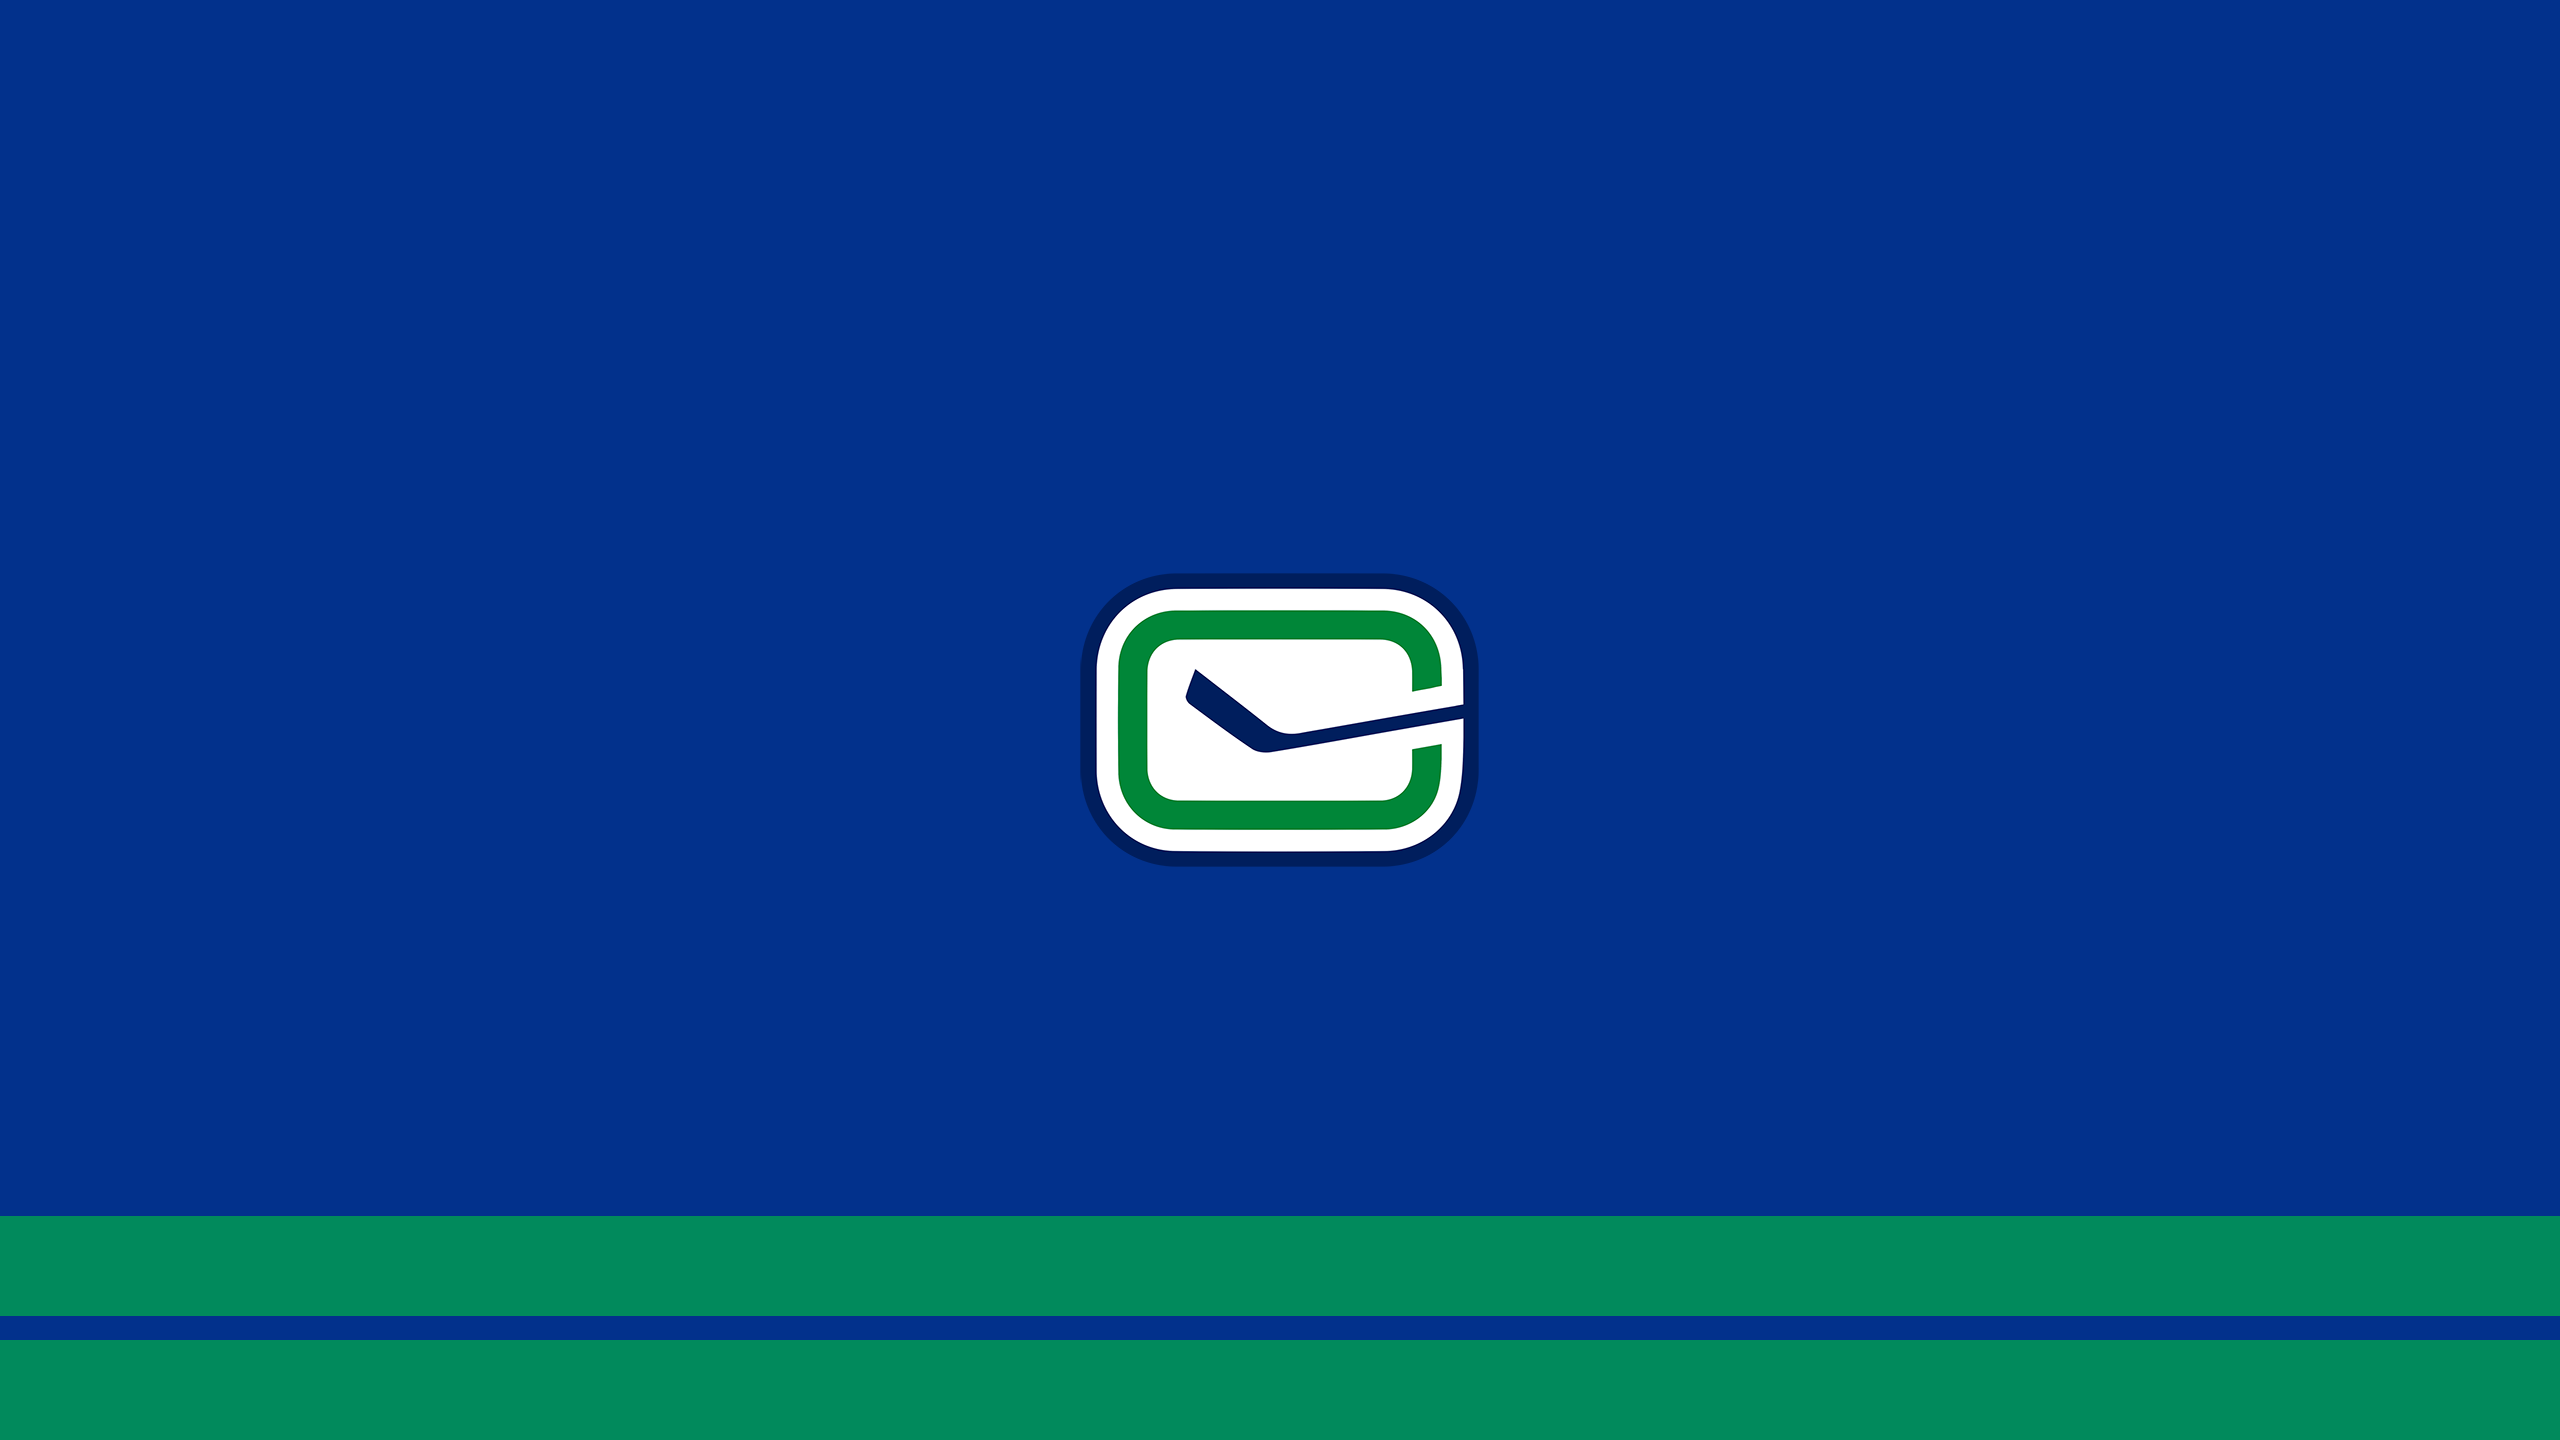 Vancouver Canucks (Third)